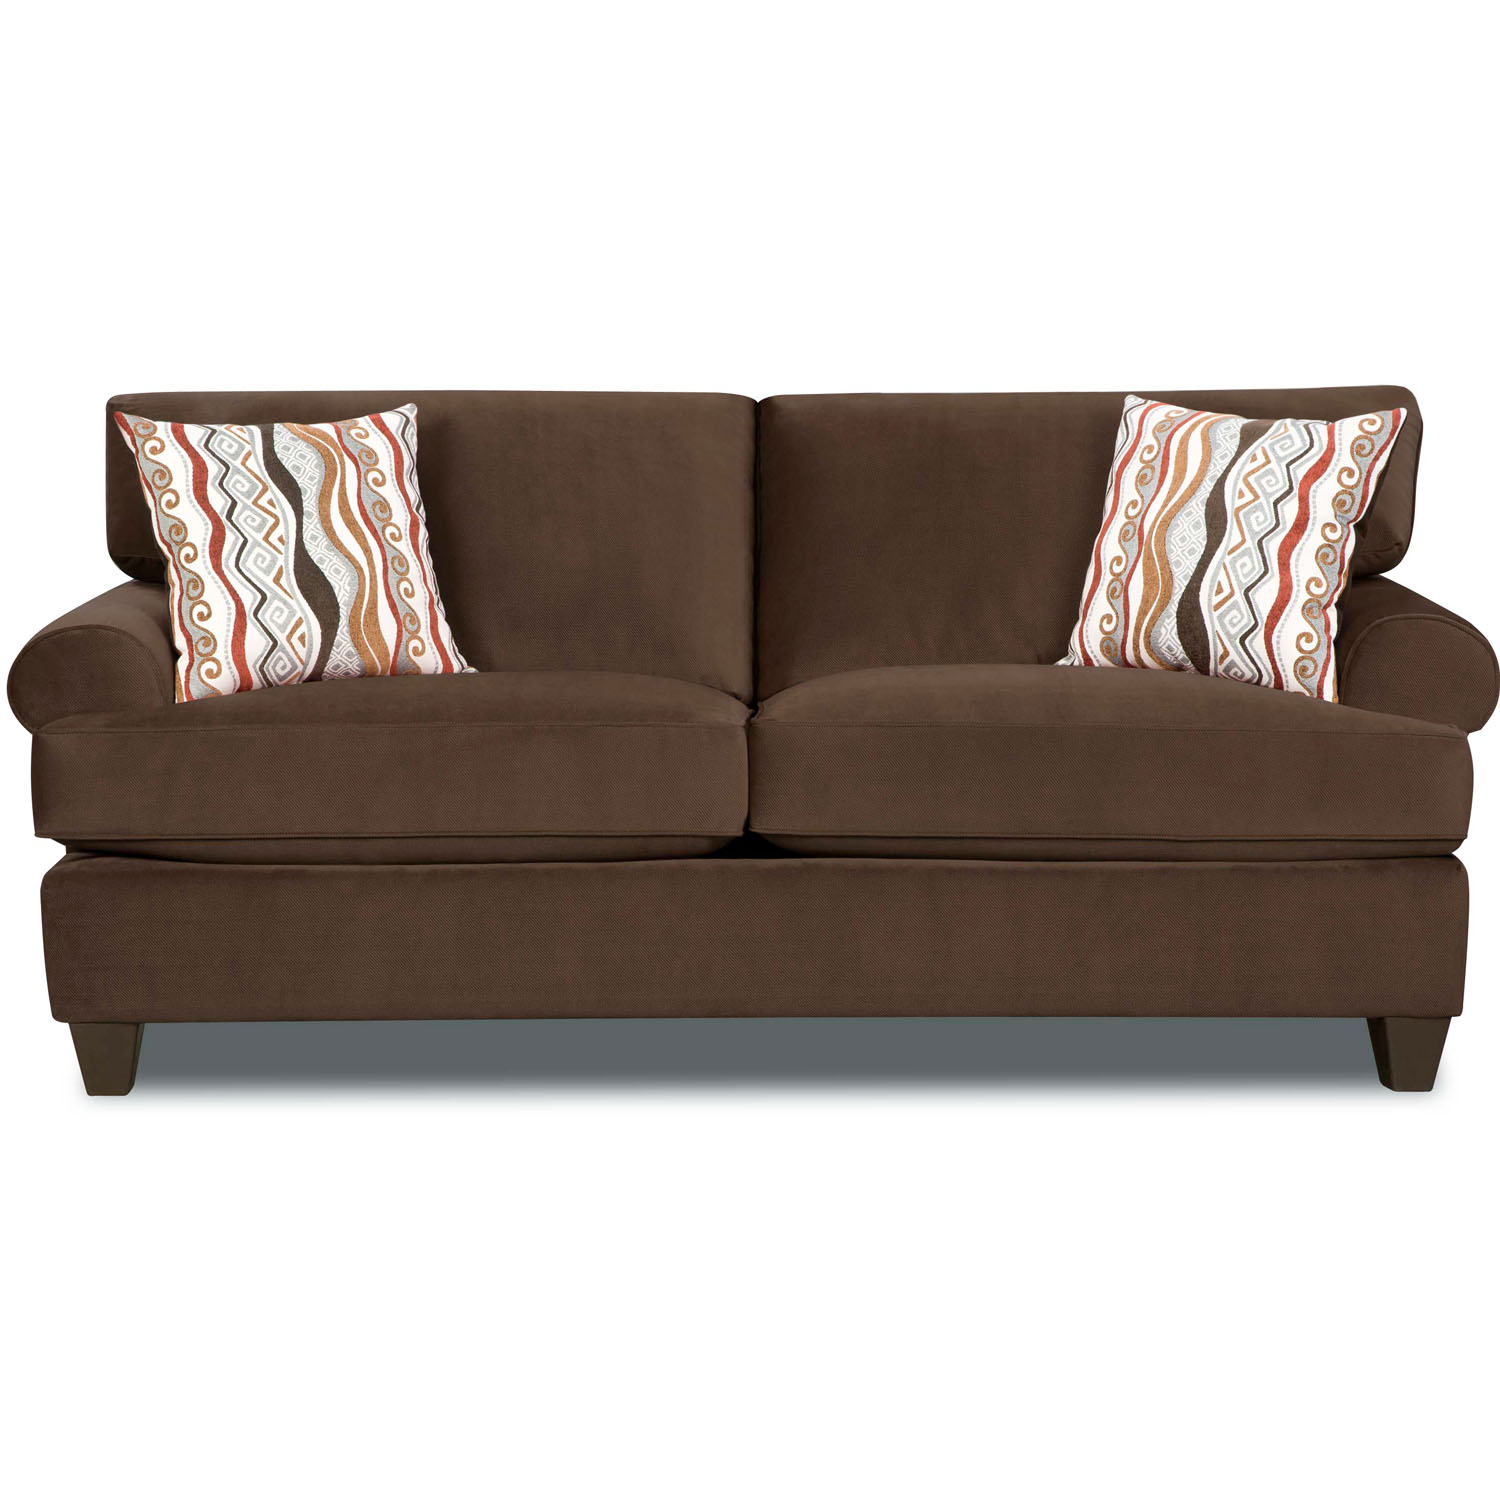 Cambridge Easton Sofa in Chocolate